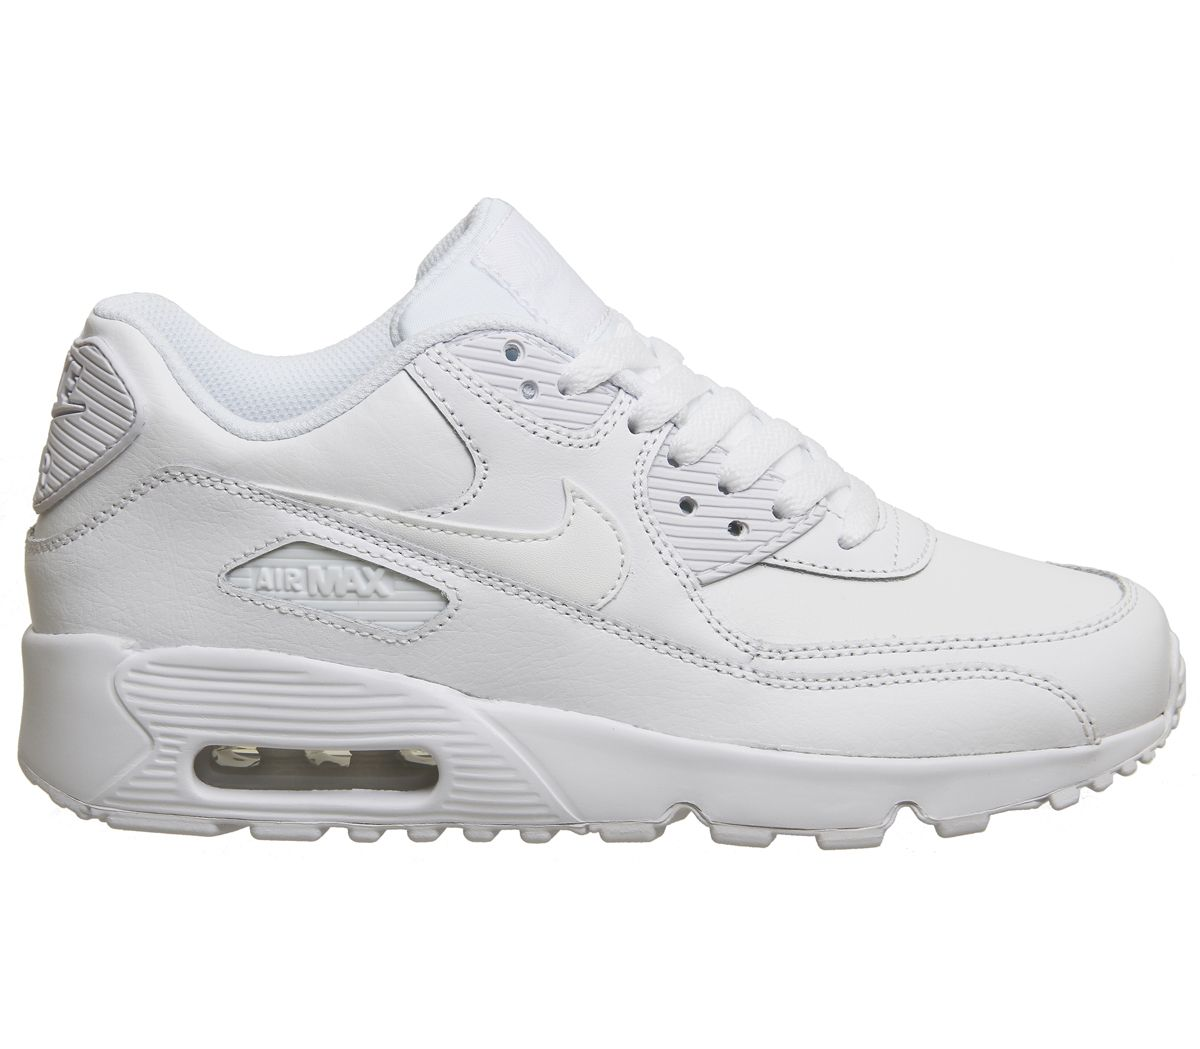 538a3014fdb79 Nike Air Max 90 Trainers White Mono Leather - Hers trainers